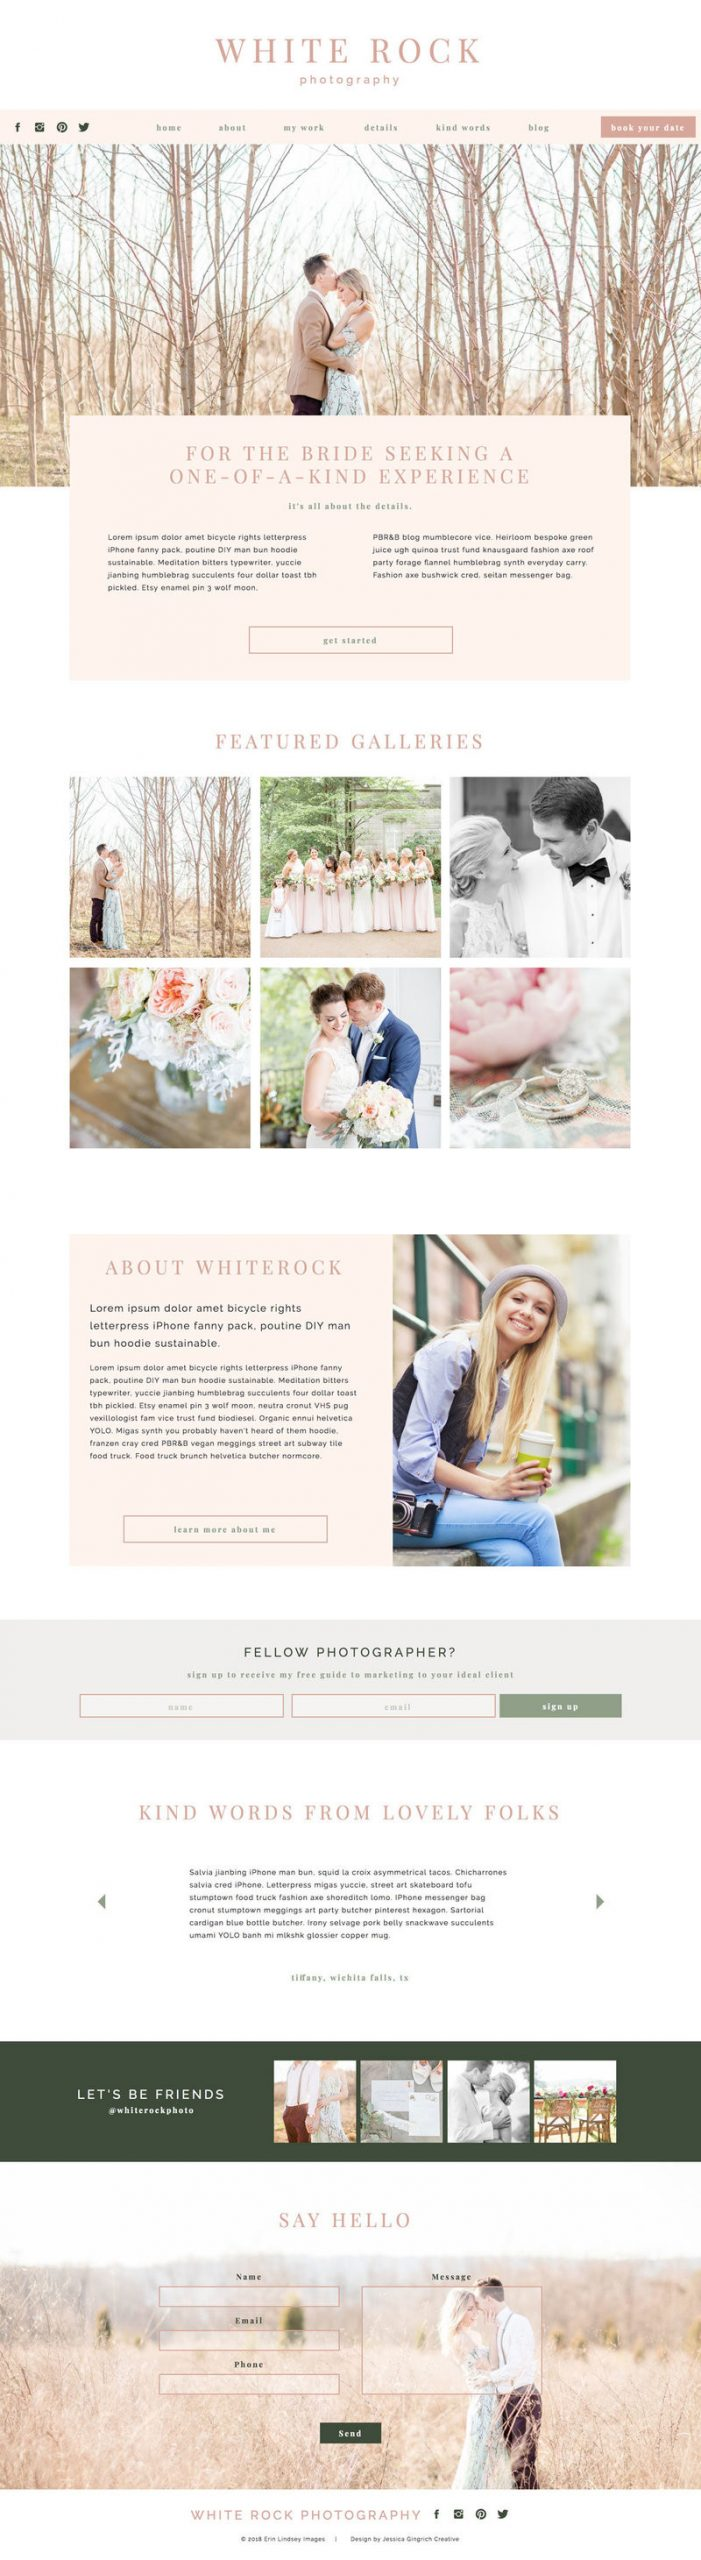 Free Photography Pricing Template